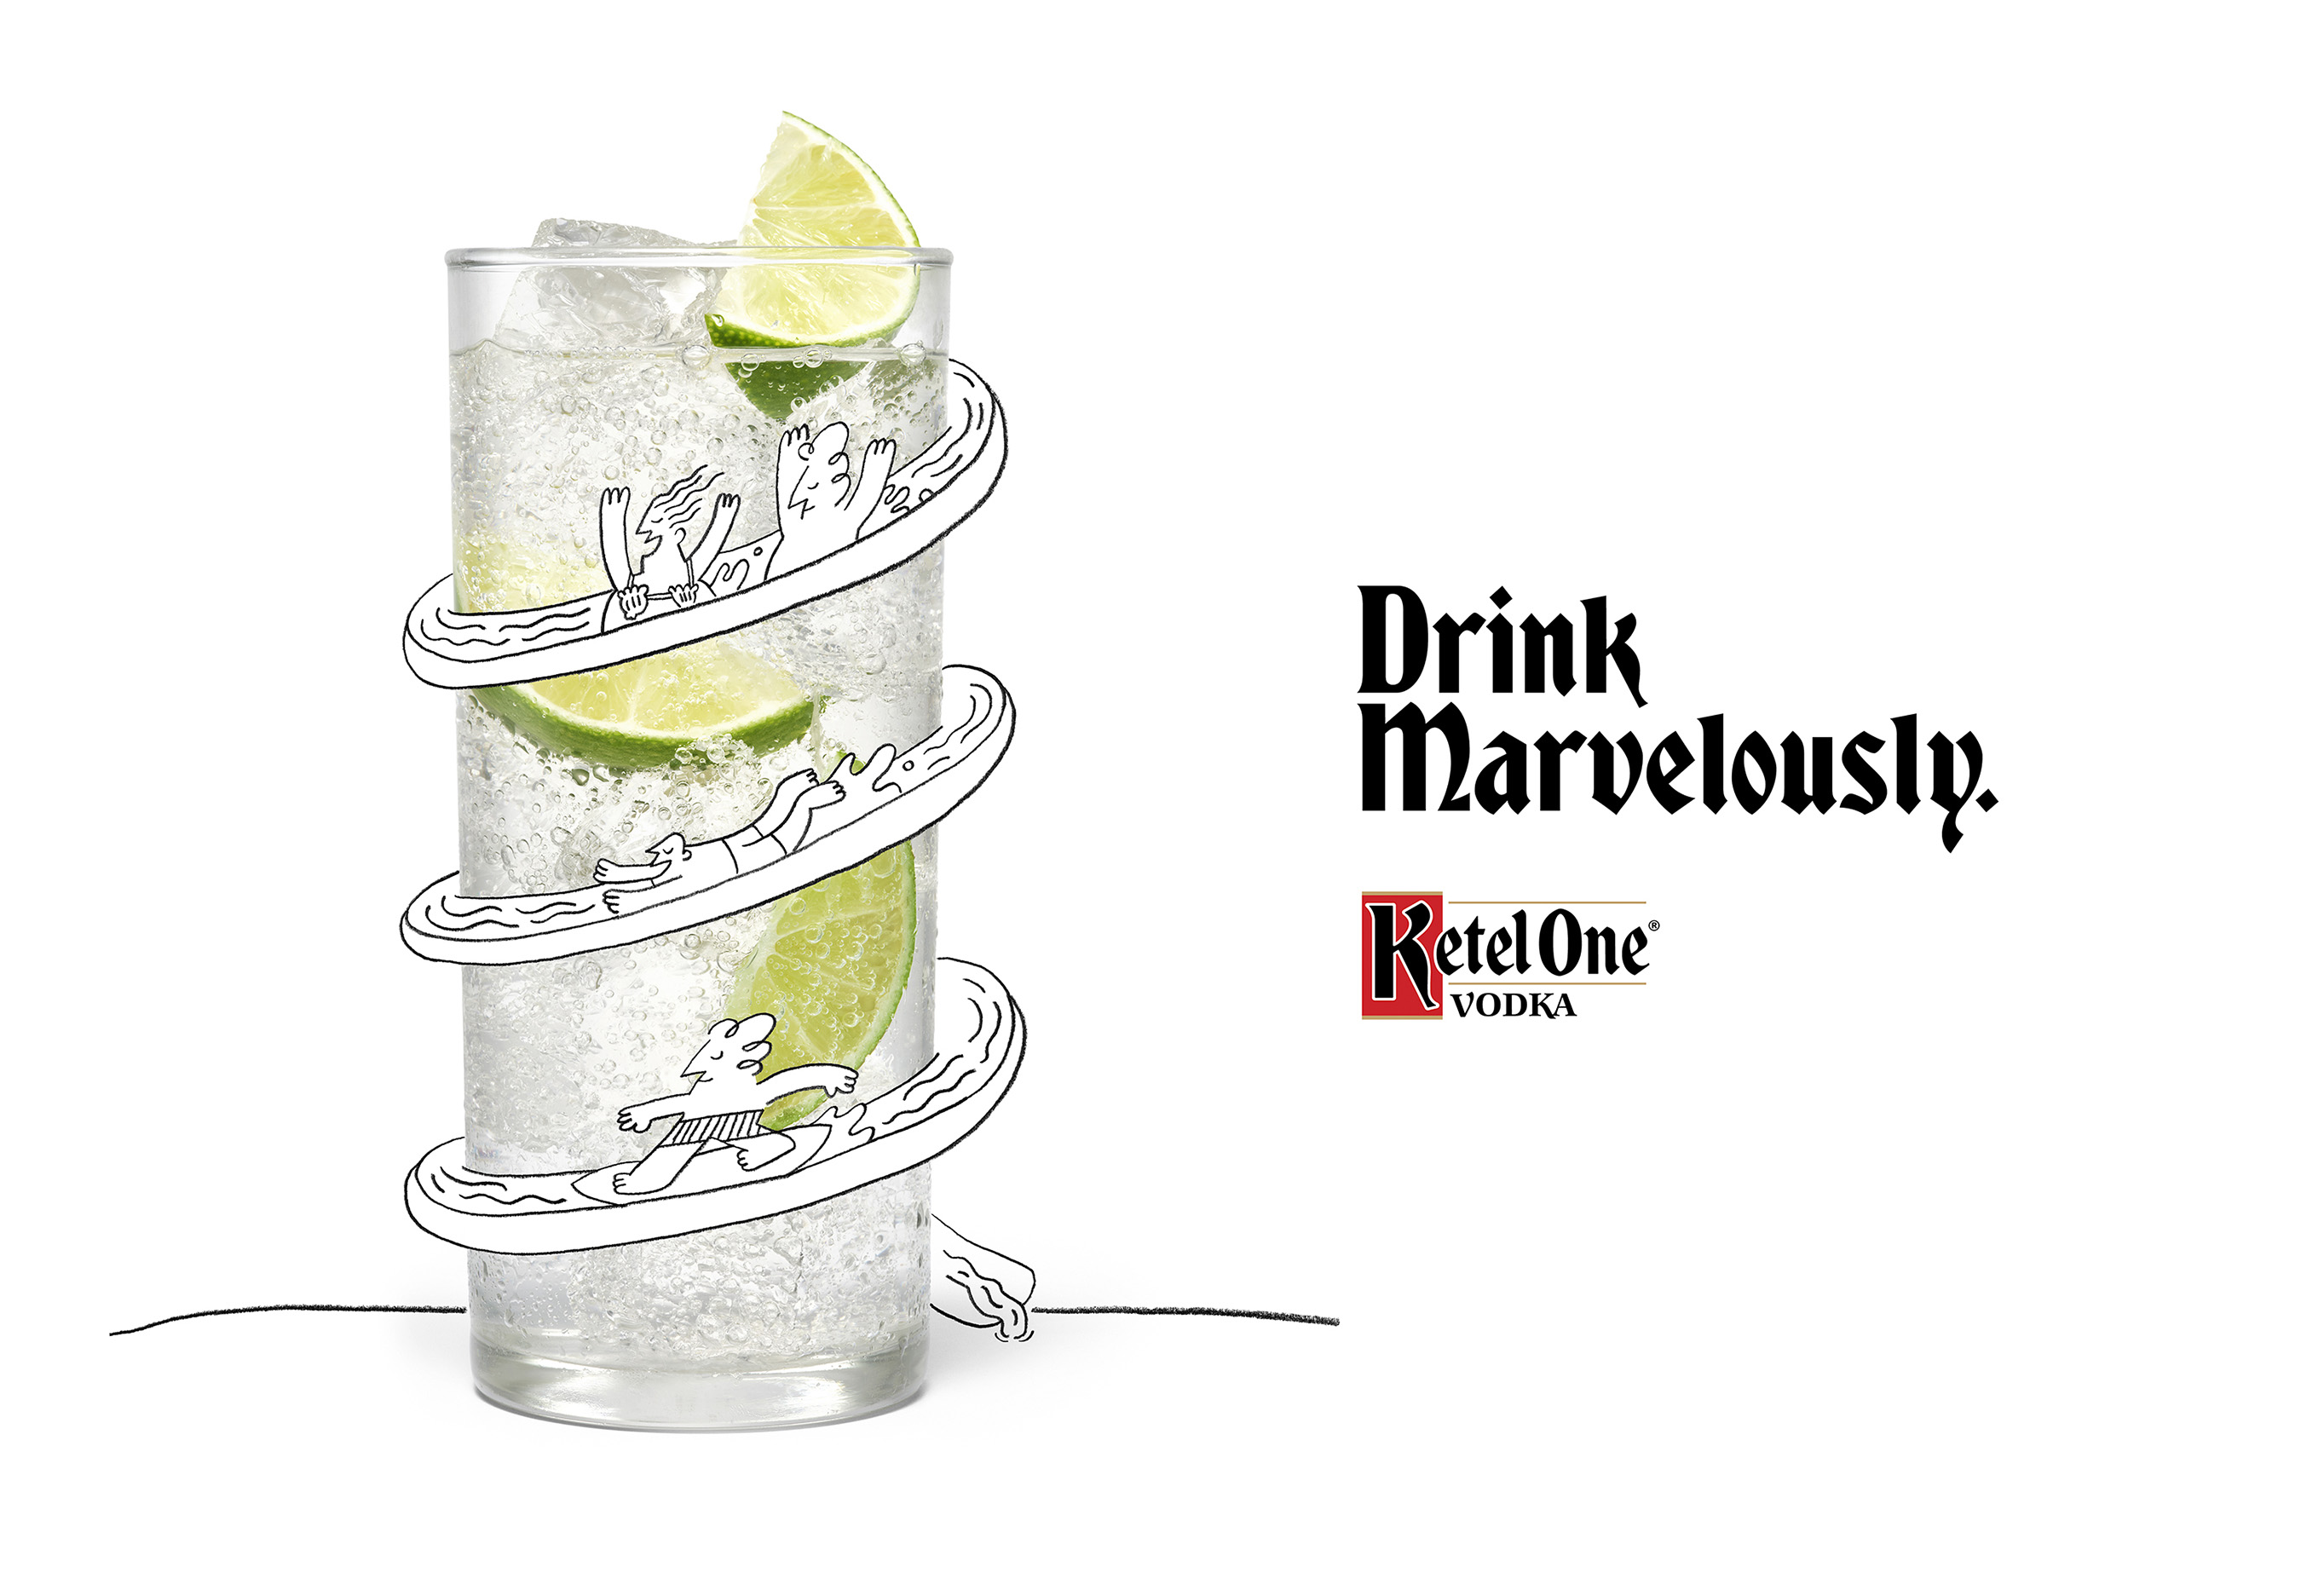 Ketel One Family Made Vodka Welcomes The World To Drink Marvelously photo